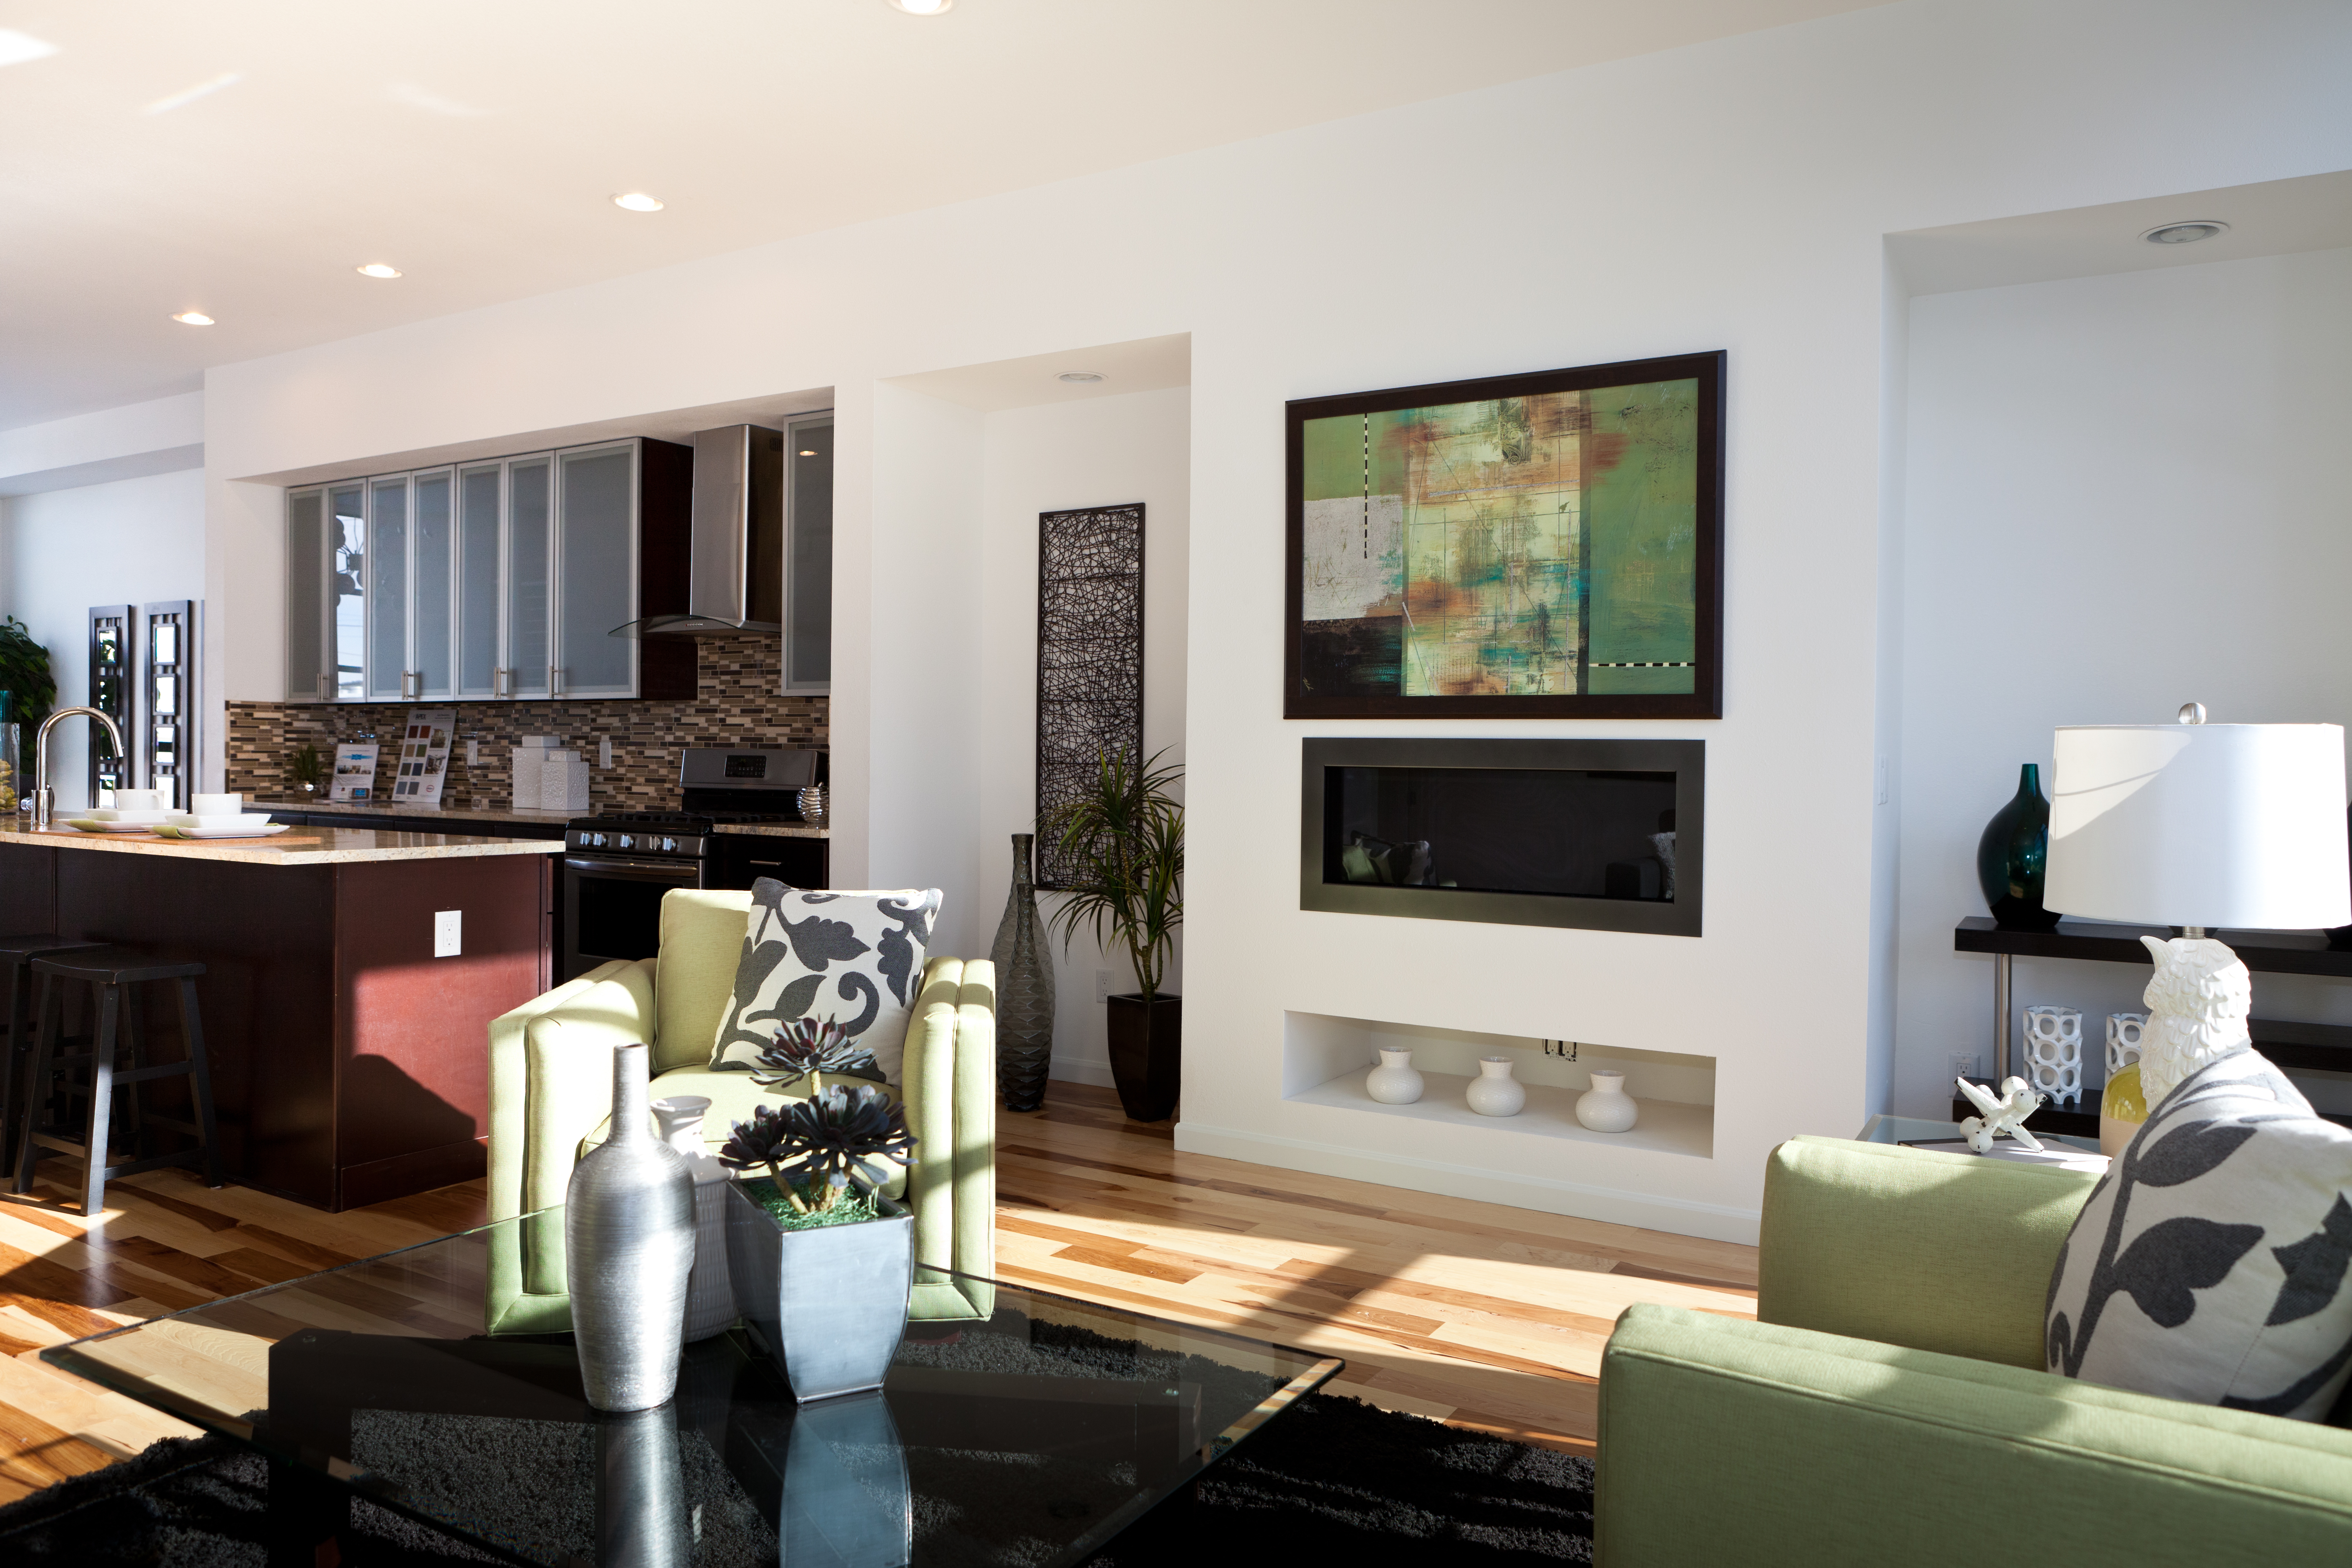 Stoll Family Room and Kitchen